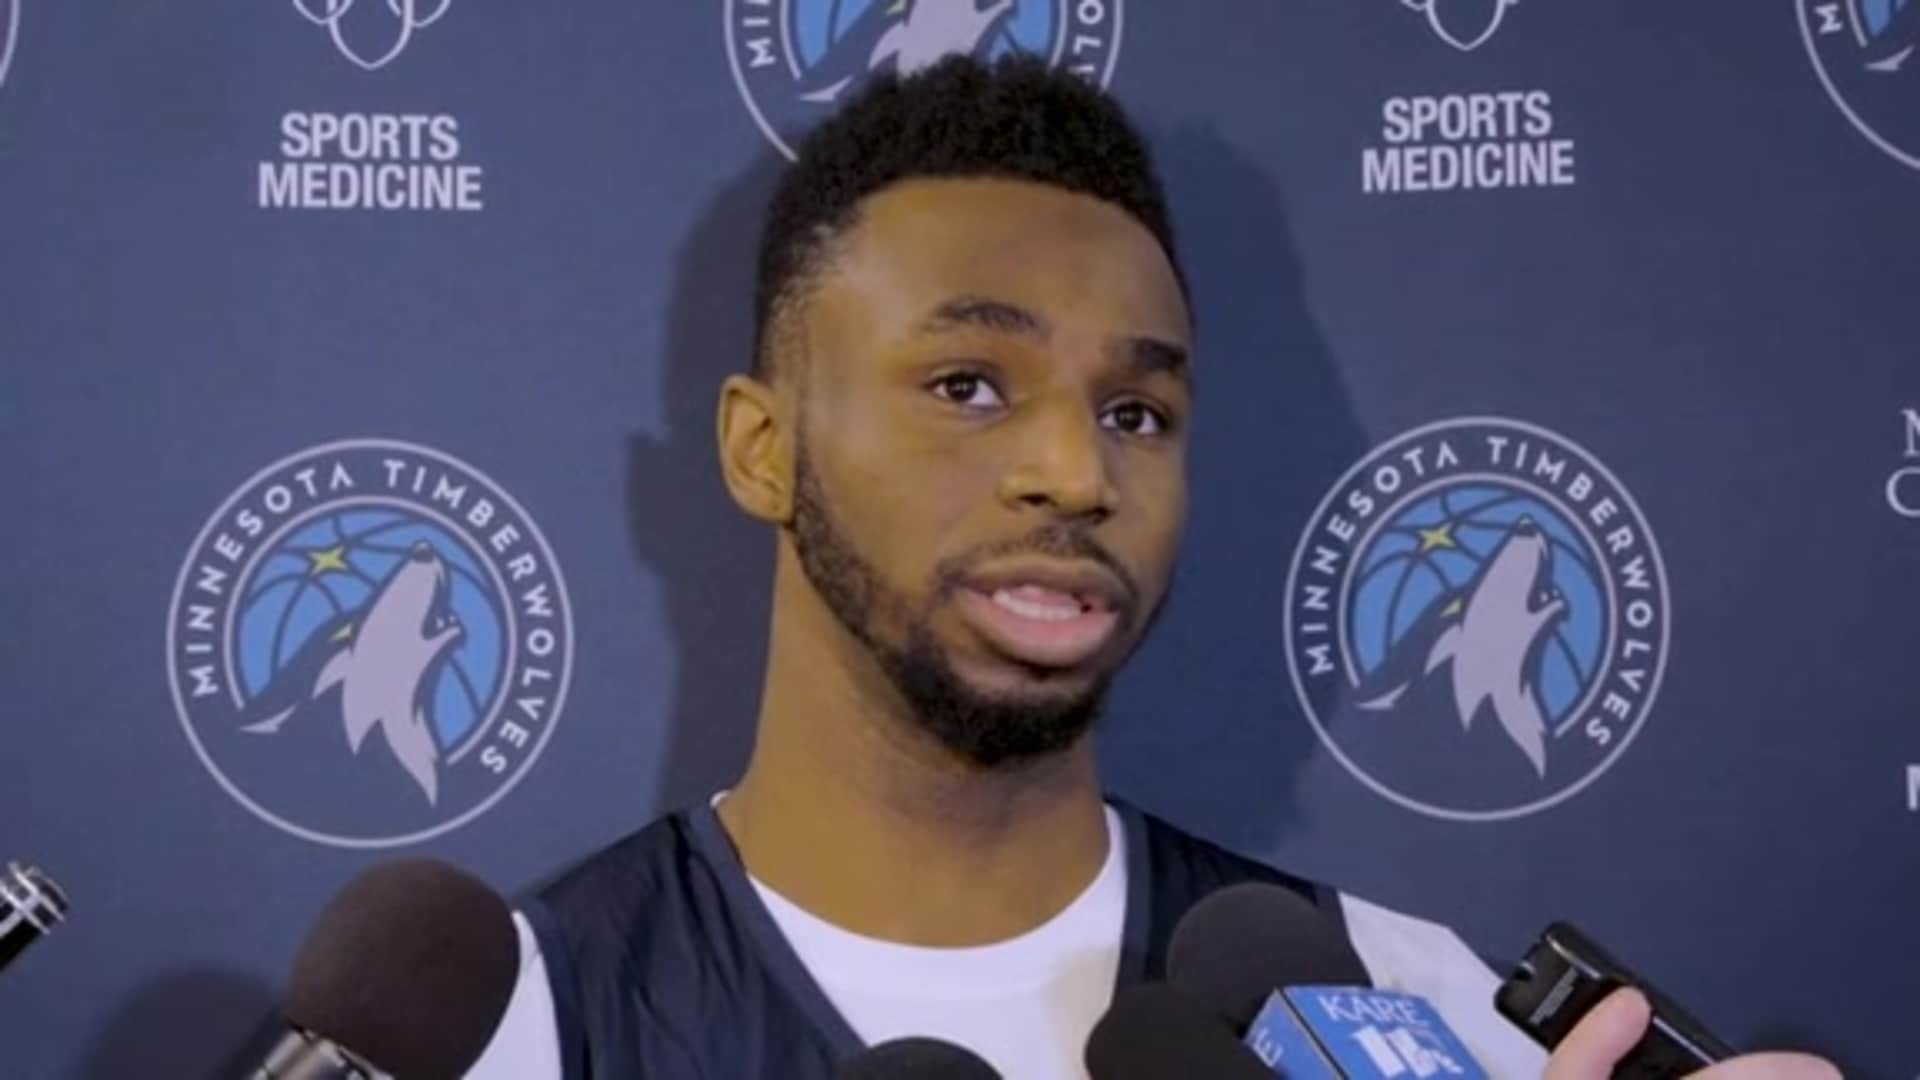 Timberwolves Guard Andrew Wiggins On Coach Vanterpool's Impact On His Defense (12.16.19)